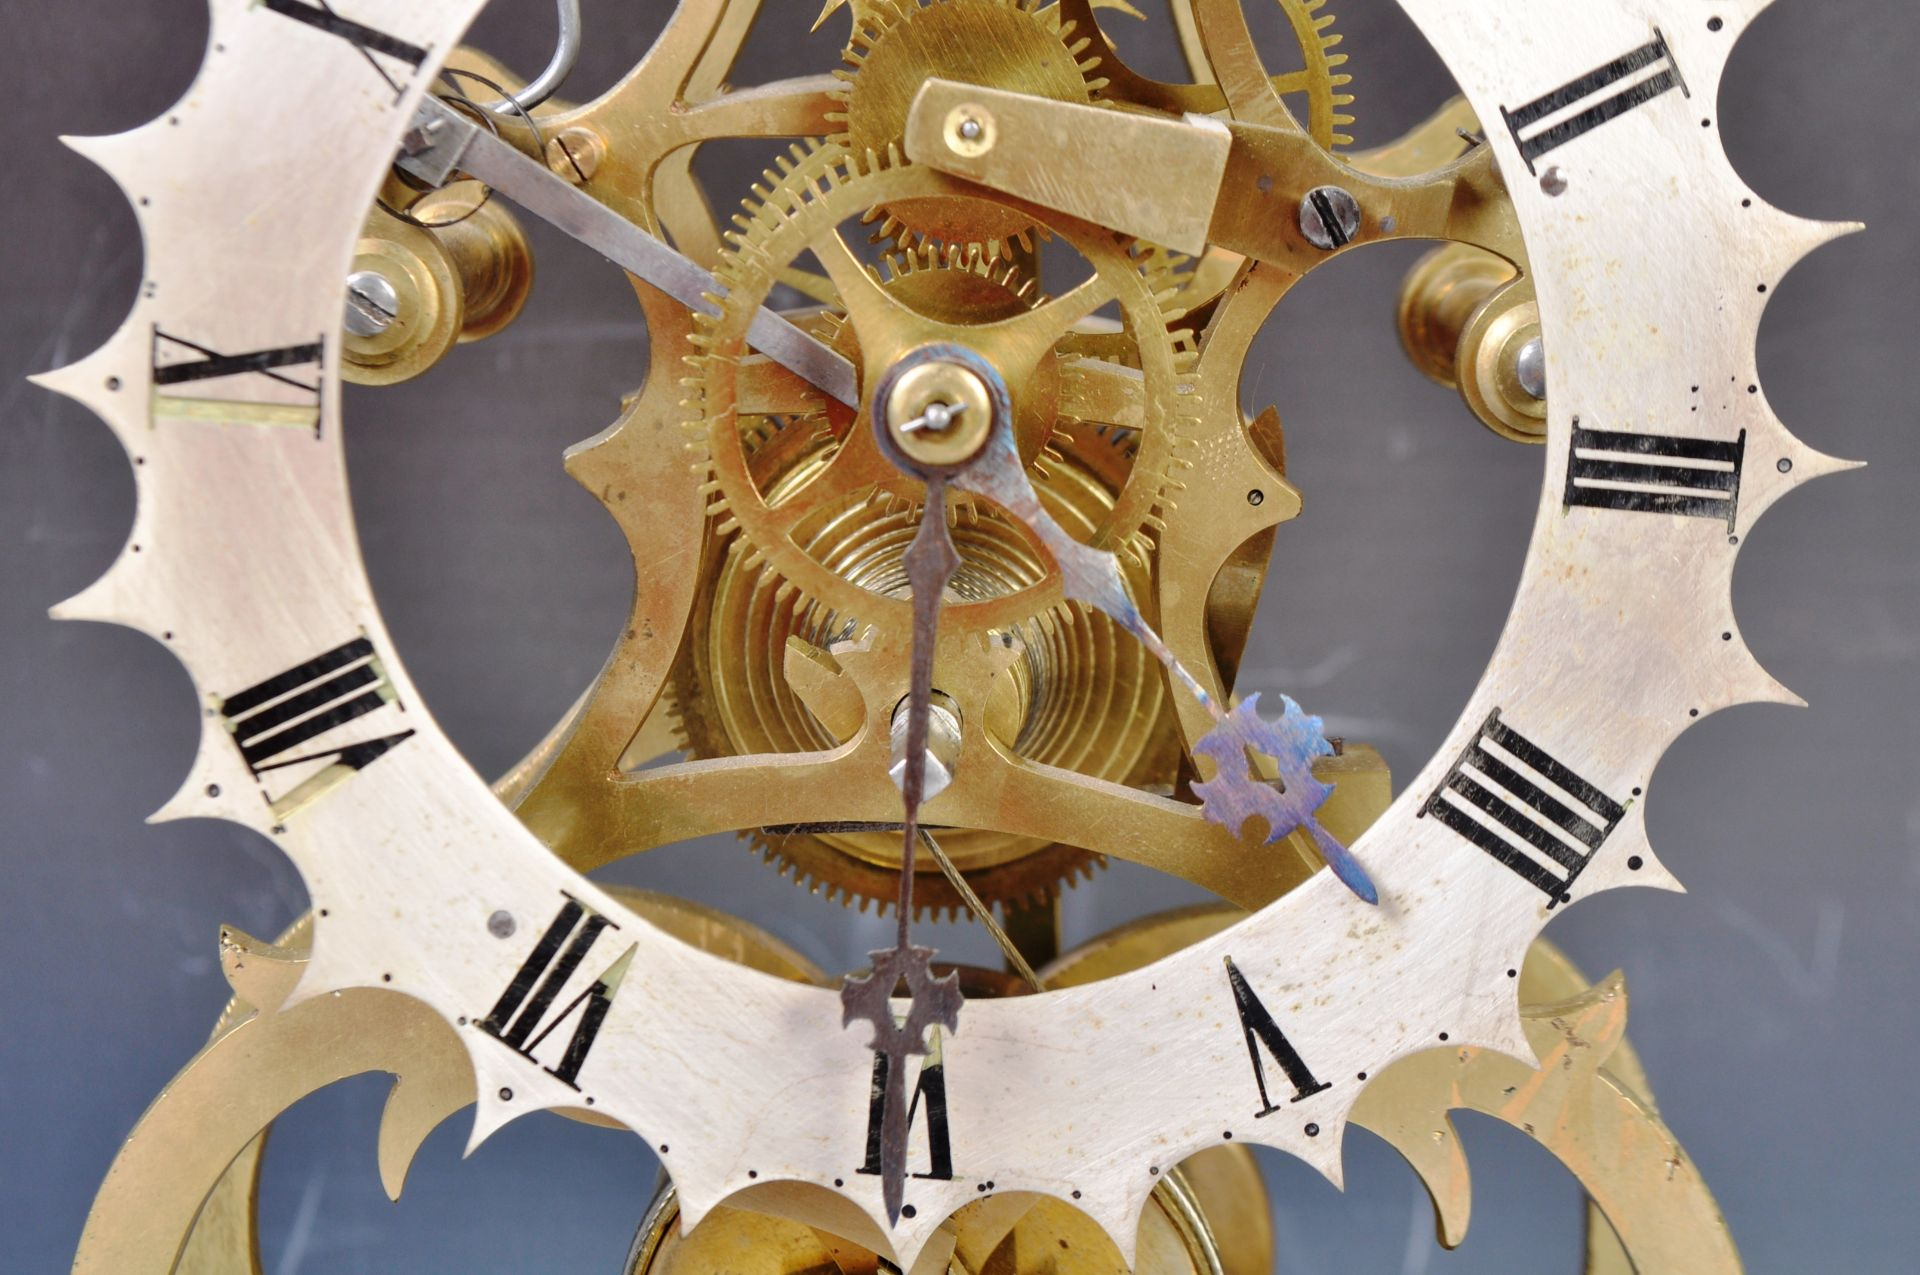 ANTIQUE MID 19TH CENTURY GOTHIC BRASS SKELETON CLOCK IN GLASS DOME - Image 7 of 13